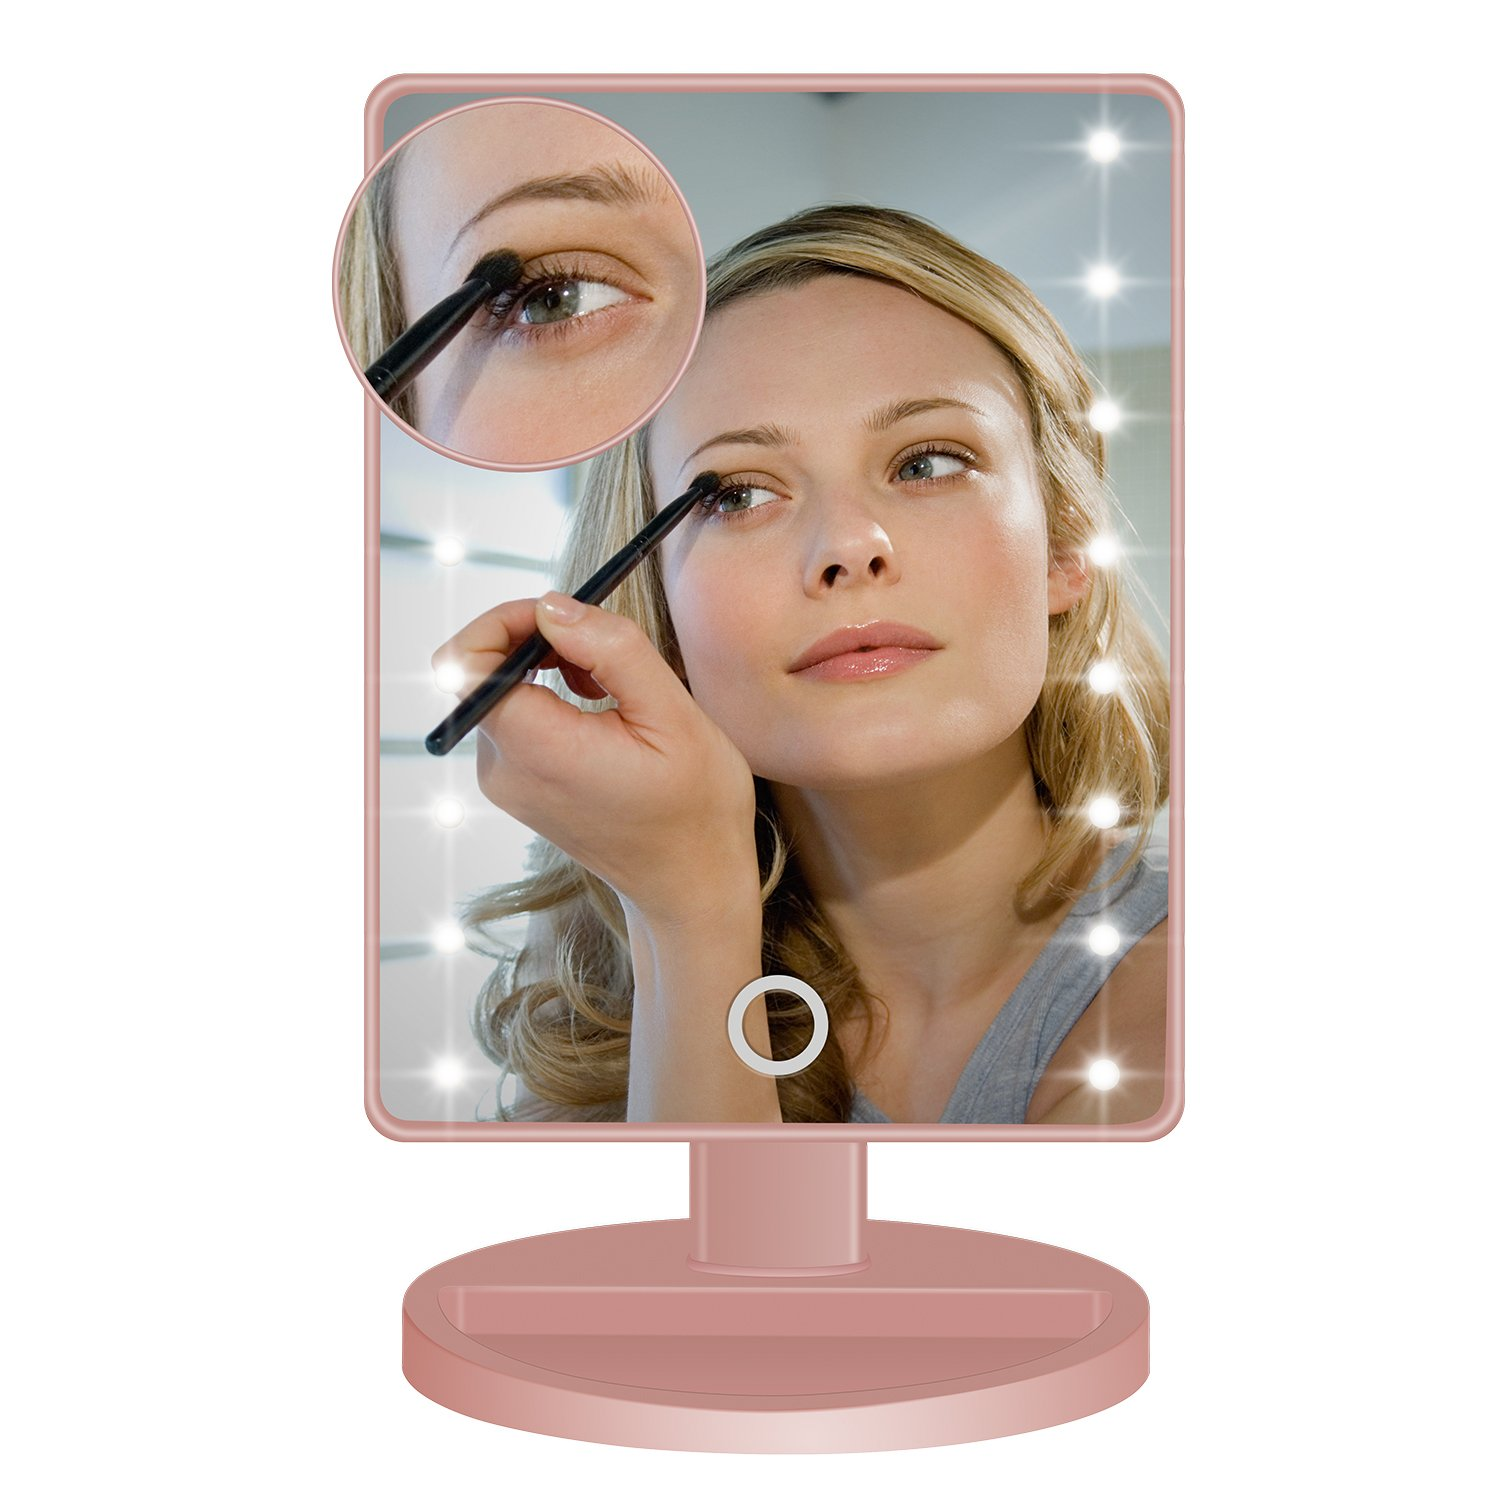 Vanity Mirror, BEW Lighted Makeup Mirror with 16 LED lights & Touch Screen Dimmable and Detachable 10x Magnifying Spot Mirror for Cosmetic Makeup, Valentine's Day Gift (Rose Gold)